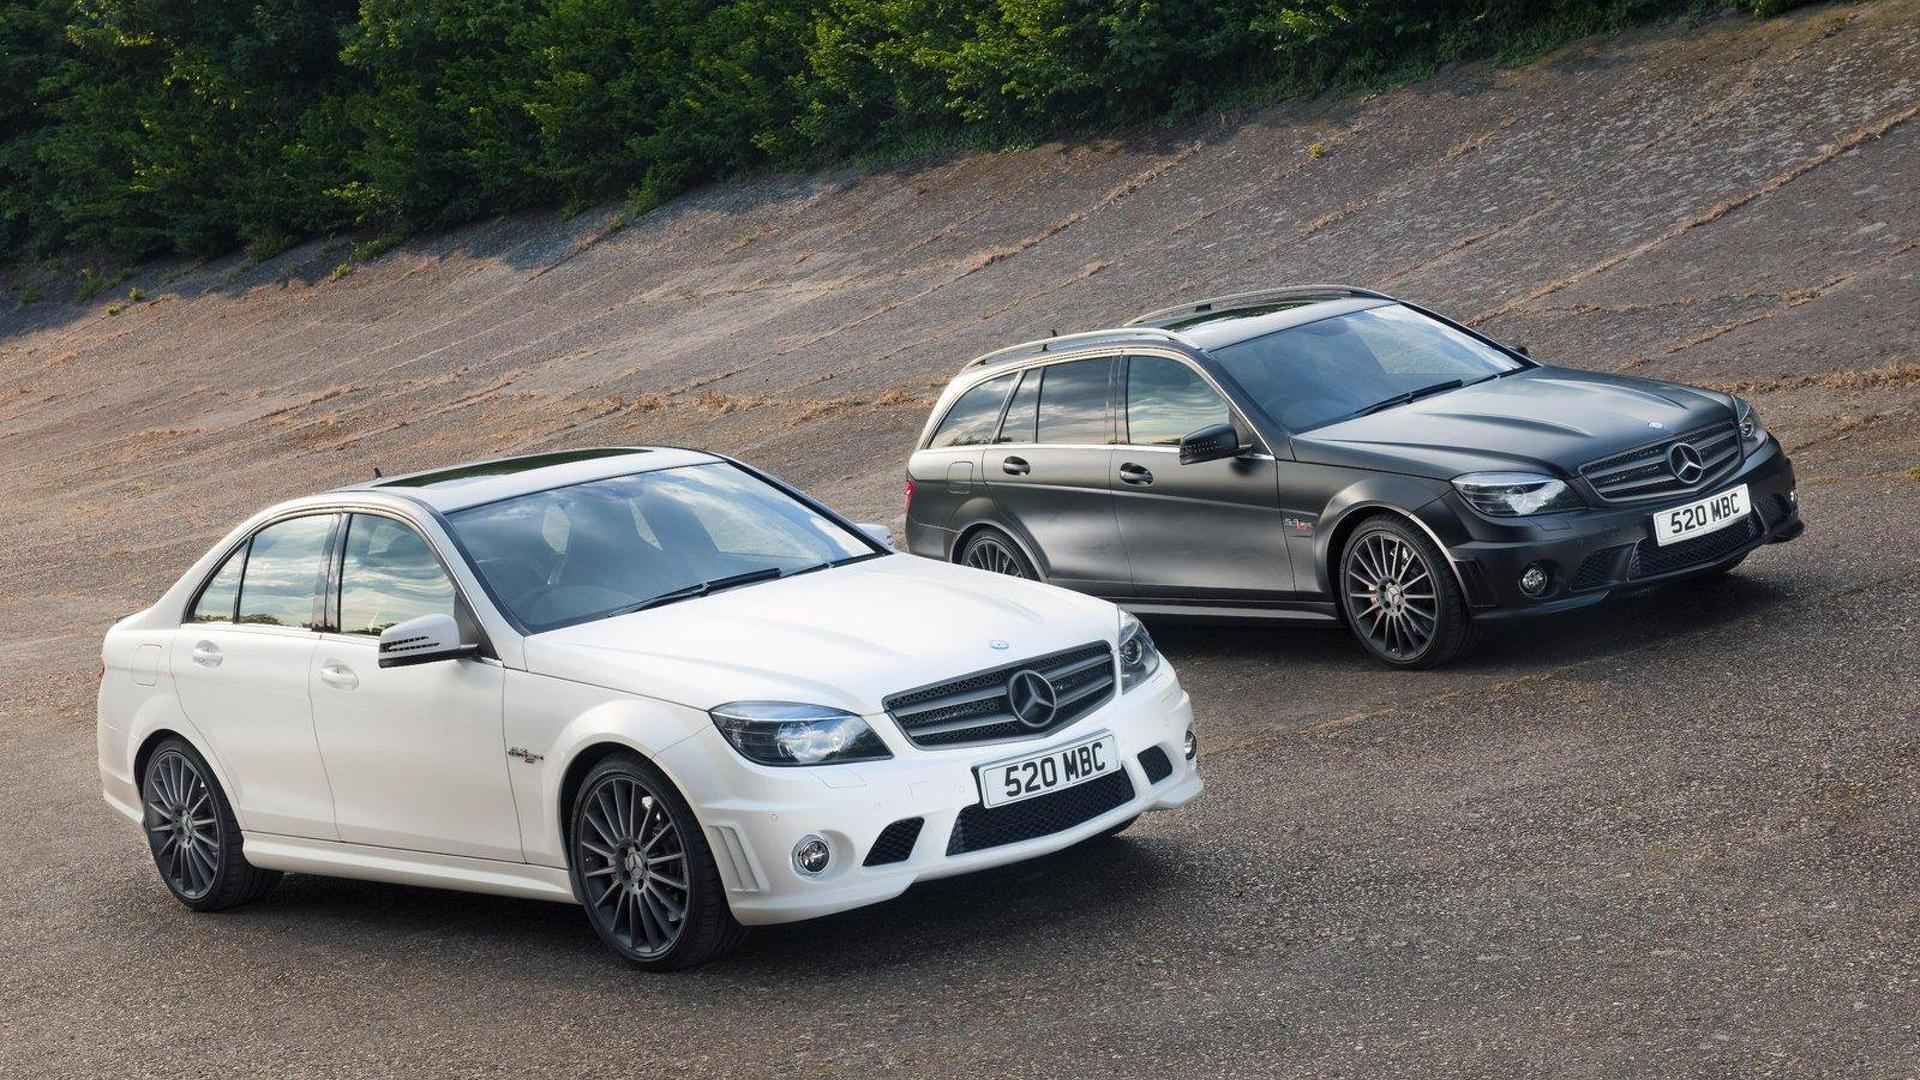 Mercedes UK launches hotter C63 AMG dubbed C-Class DR 520